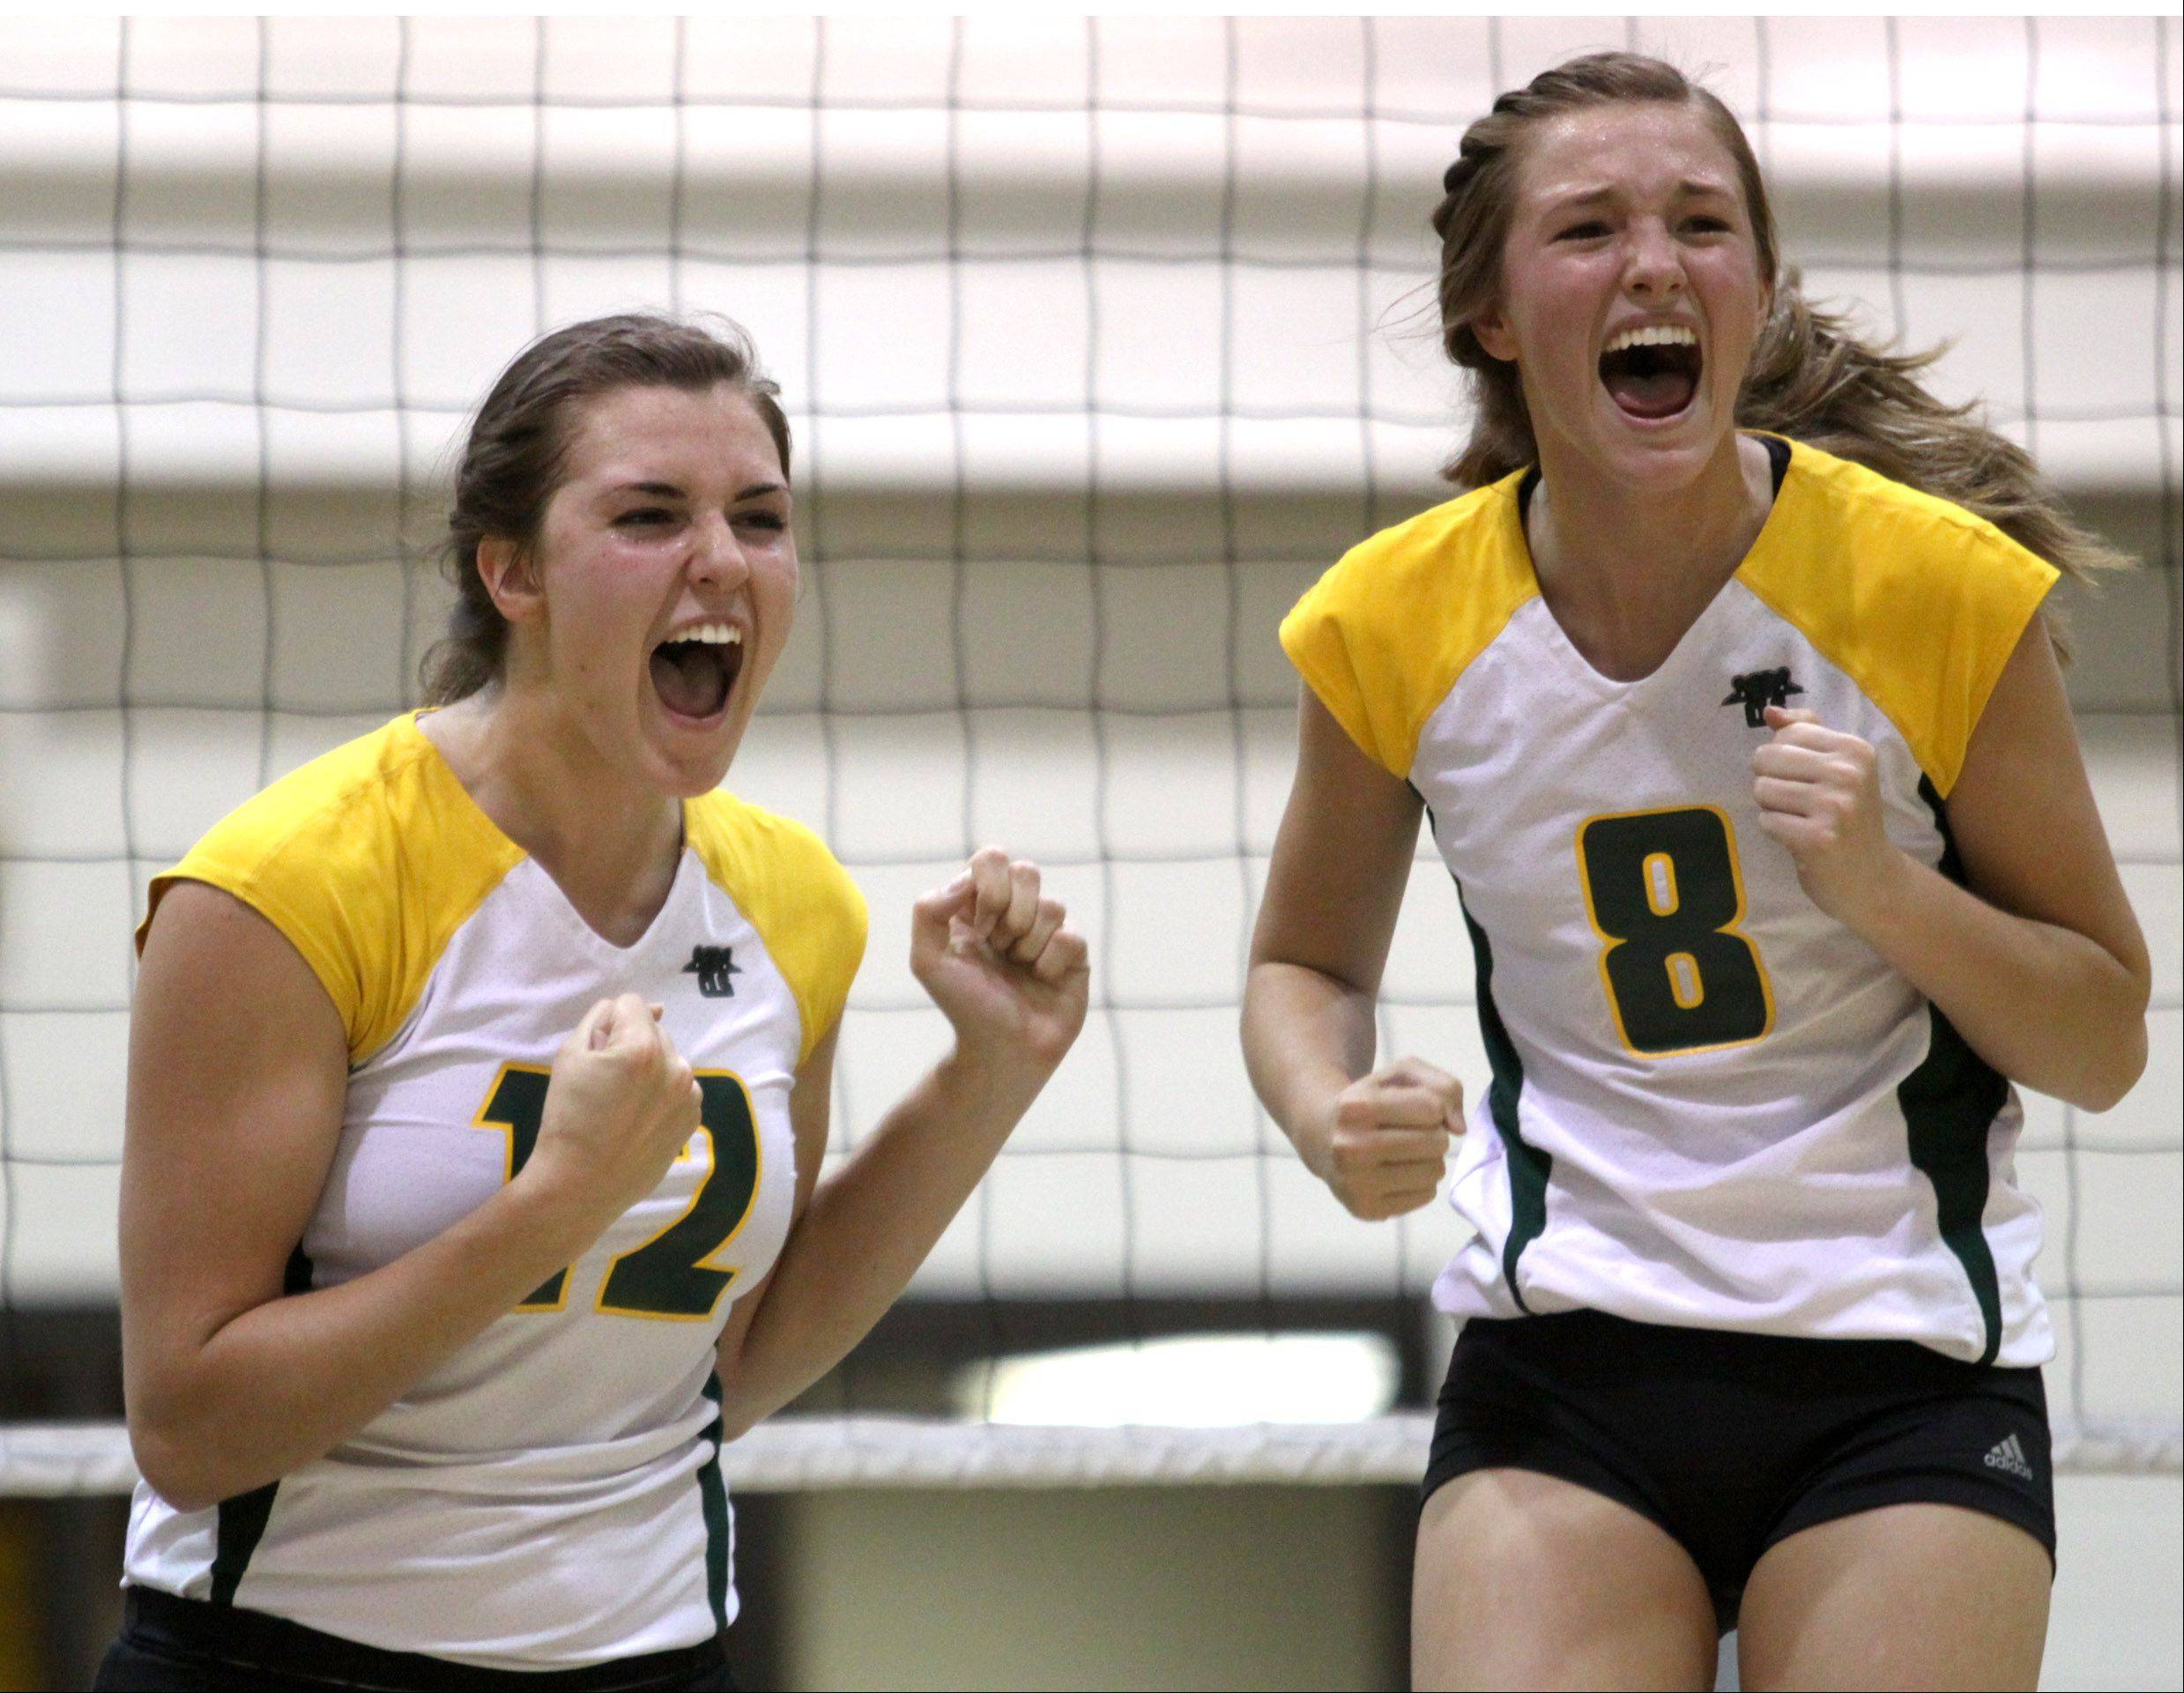 Crystal Lake South's Cassy Sivesind, right, and Nicole Slimko, left, celebrate a point in a win over Cary-Grove Thursday night in Crystal Lake.